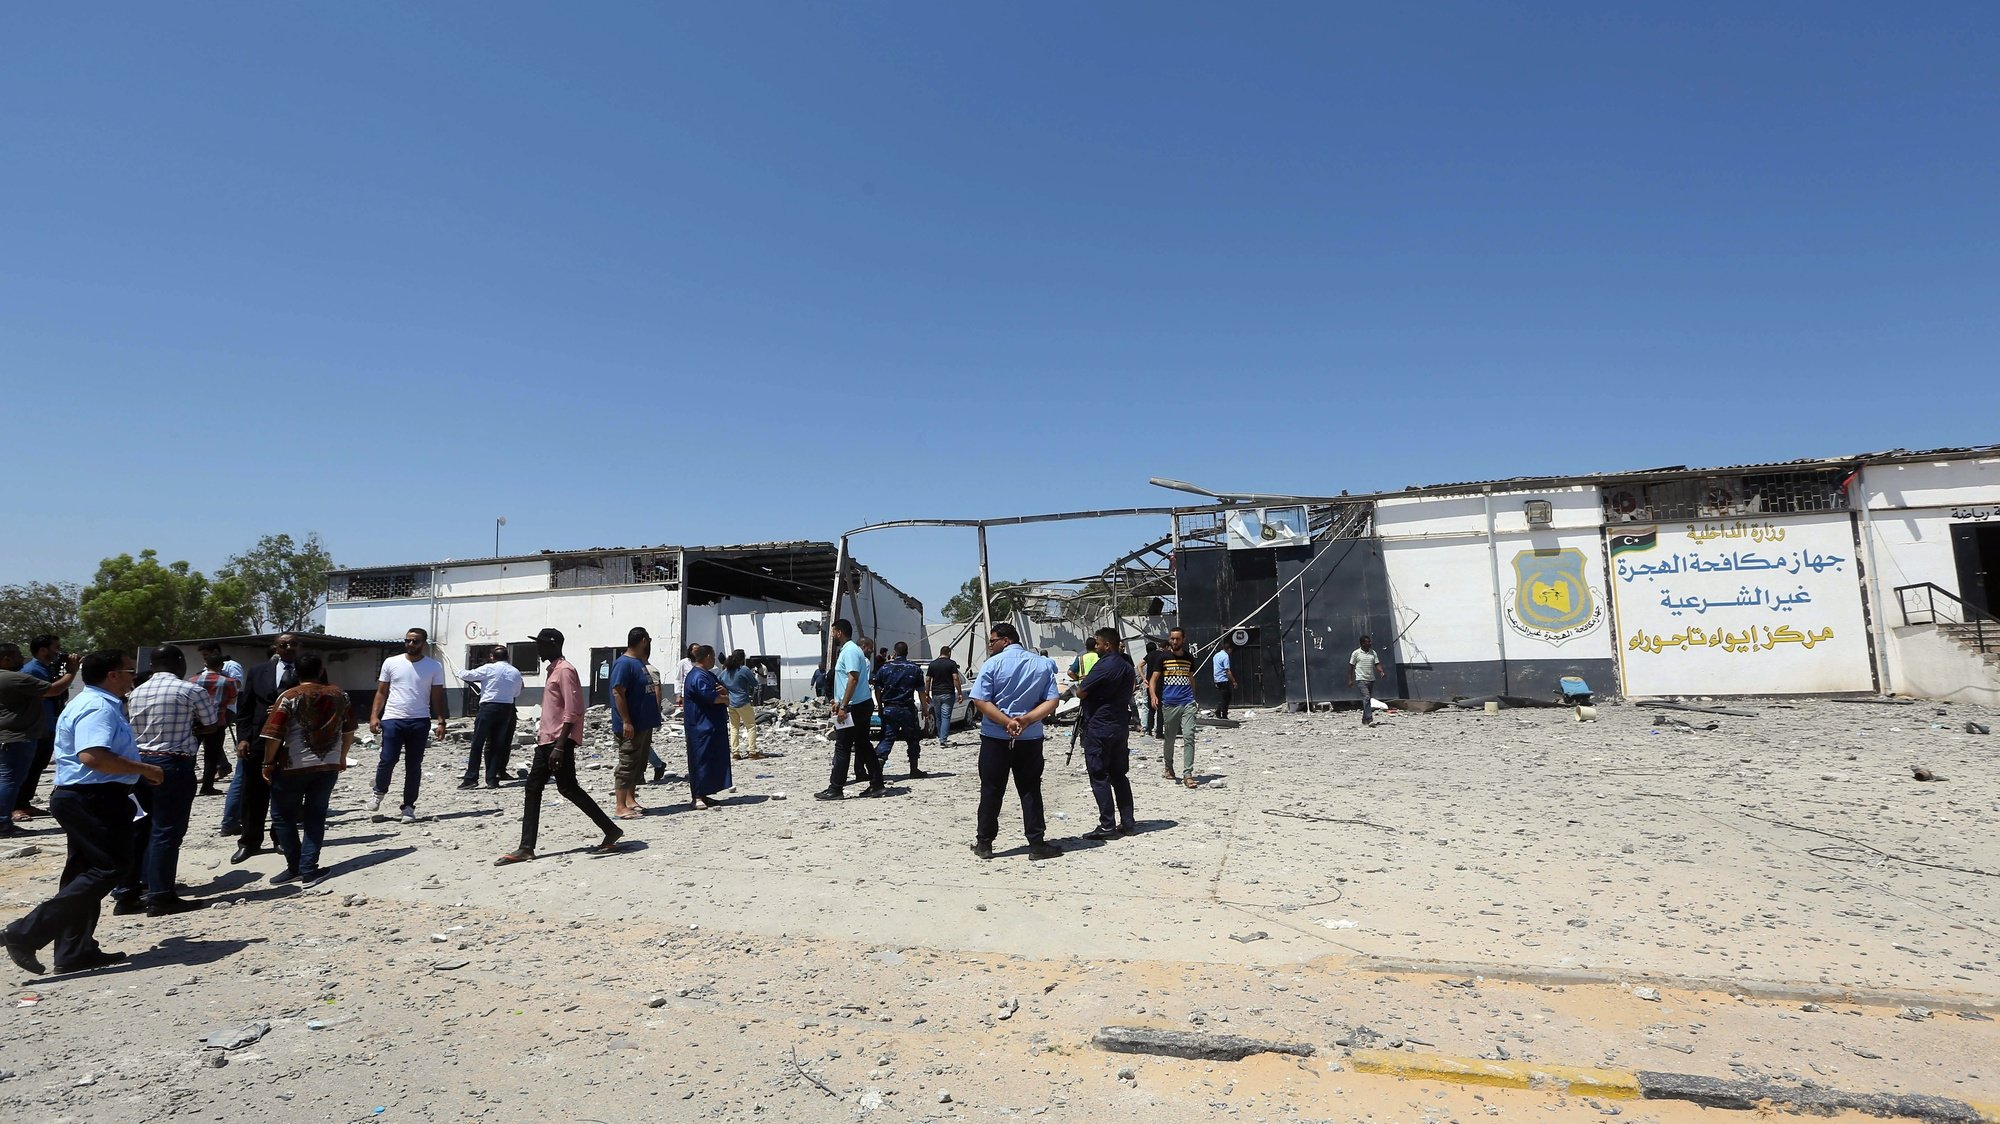 epa07692754 Migrants check the rubble of a destroyed detention center in Tripoli's, Libya, 03 July 2019. according to media reports, At least 44 people killed and 130 were injured after strike hit the Tajoura detention center held at least 600 refugees were attempting to reach Europe from Libya. The parties disputed didn't claimed any responsibility for the attack.  EPA/STR